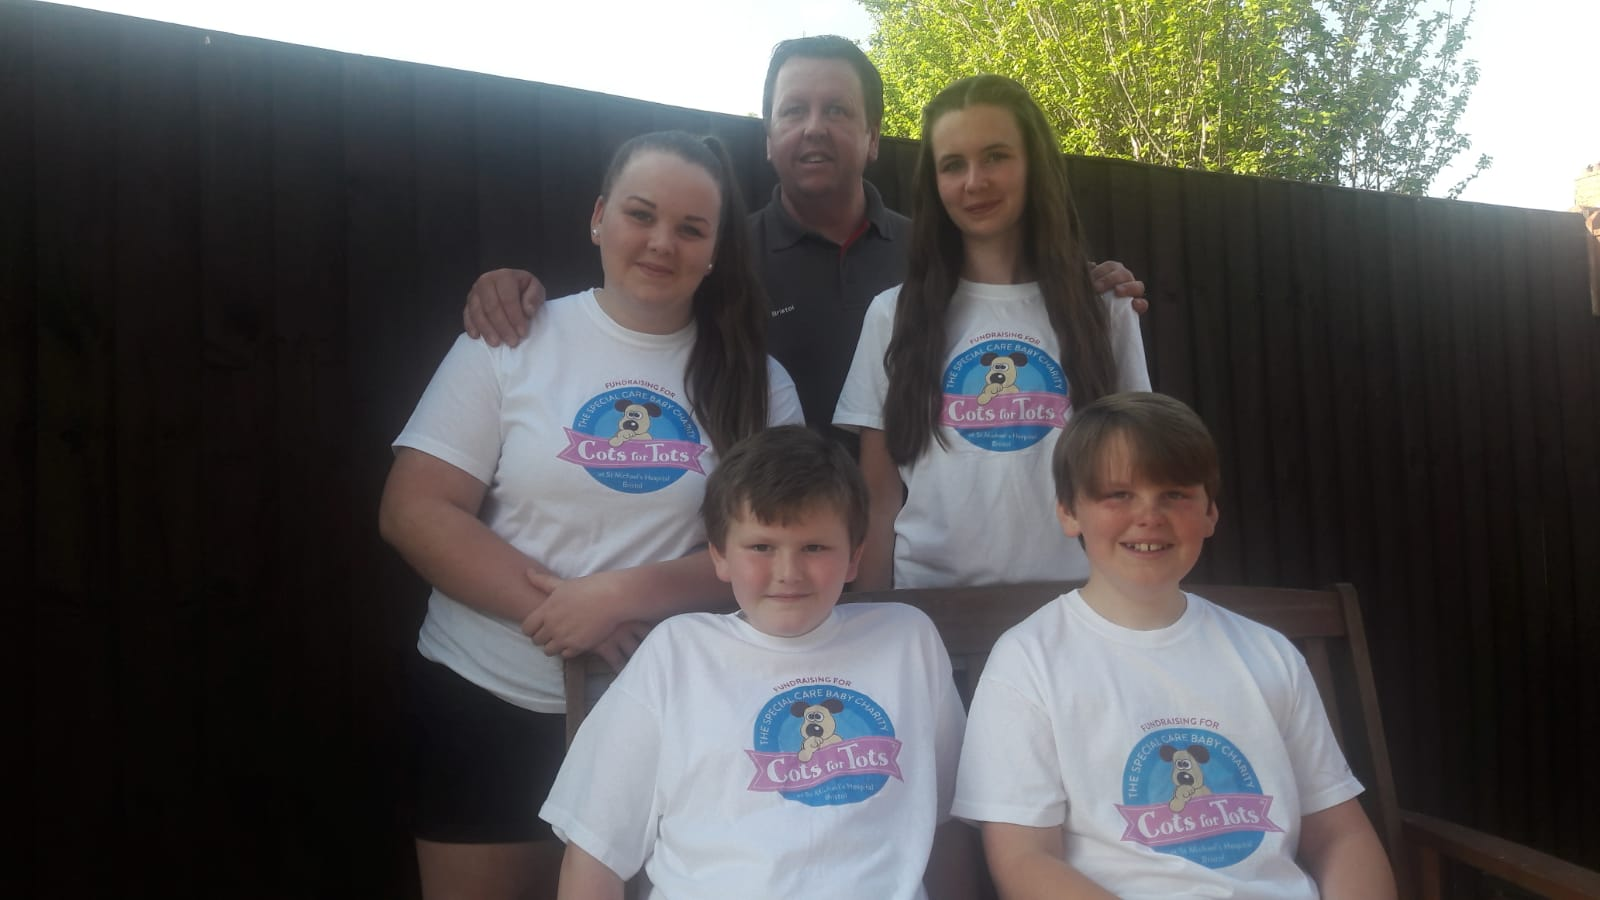 South Bristol family honours key workers while raising money for charitygeraghty family